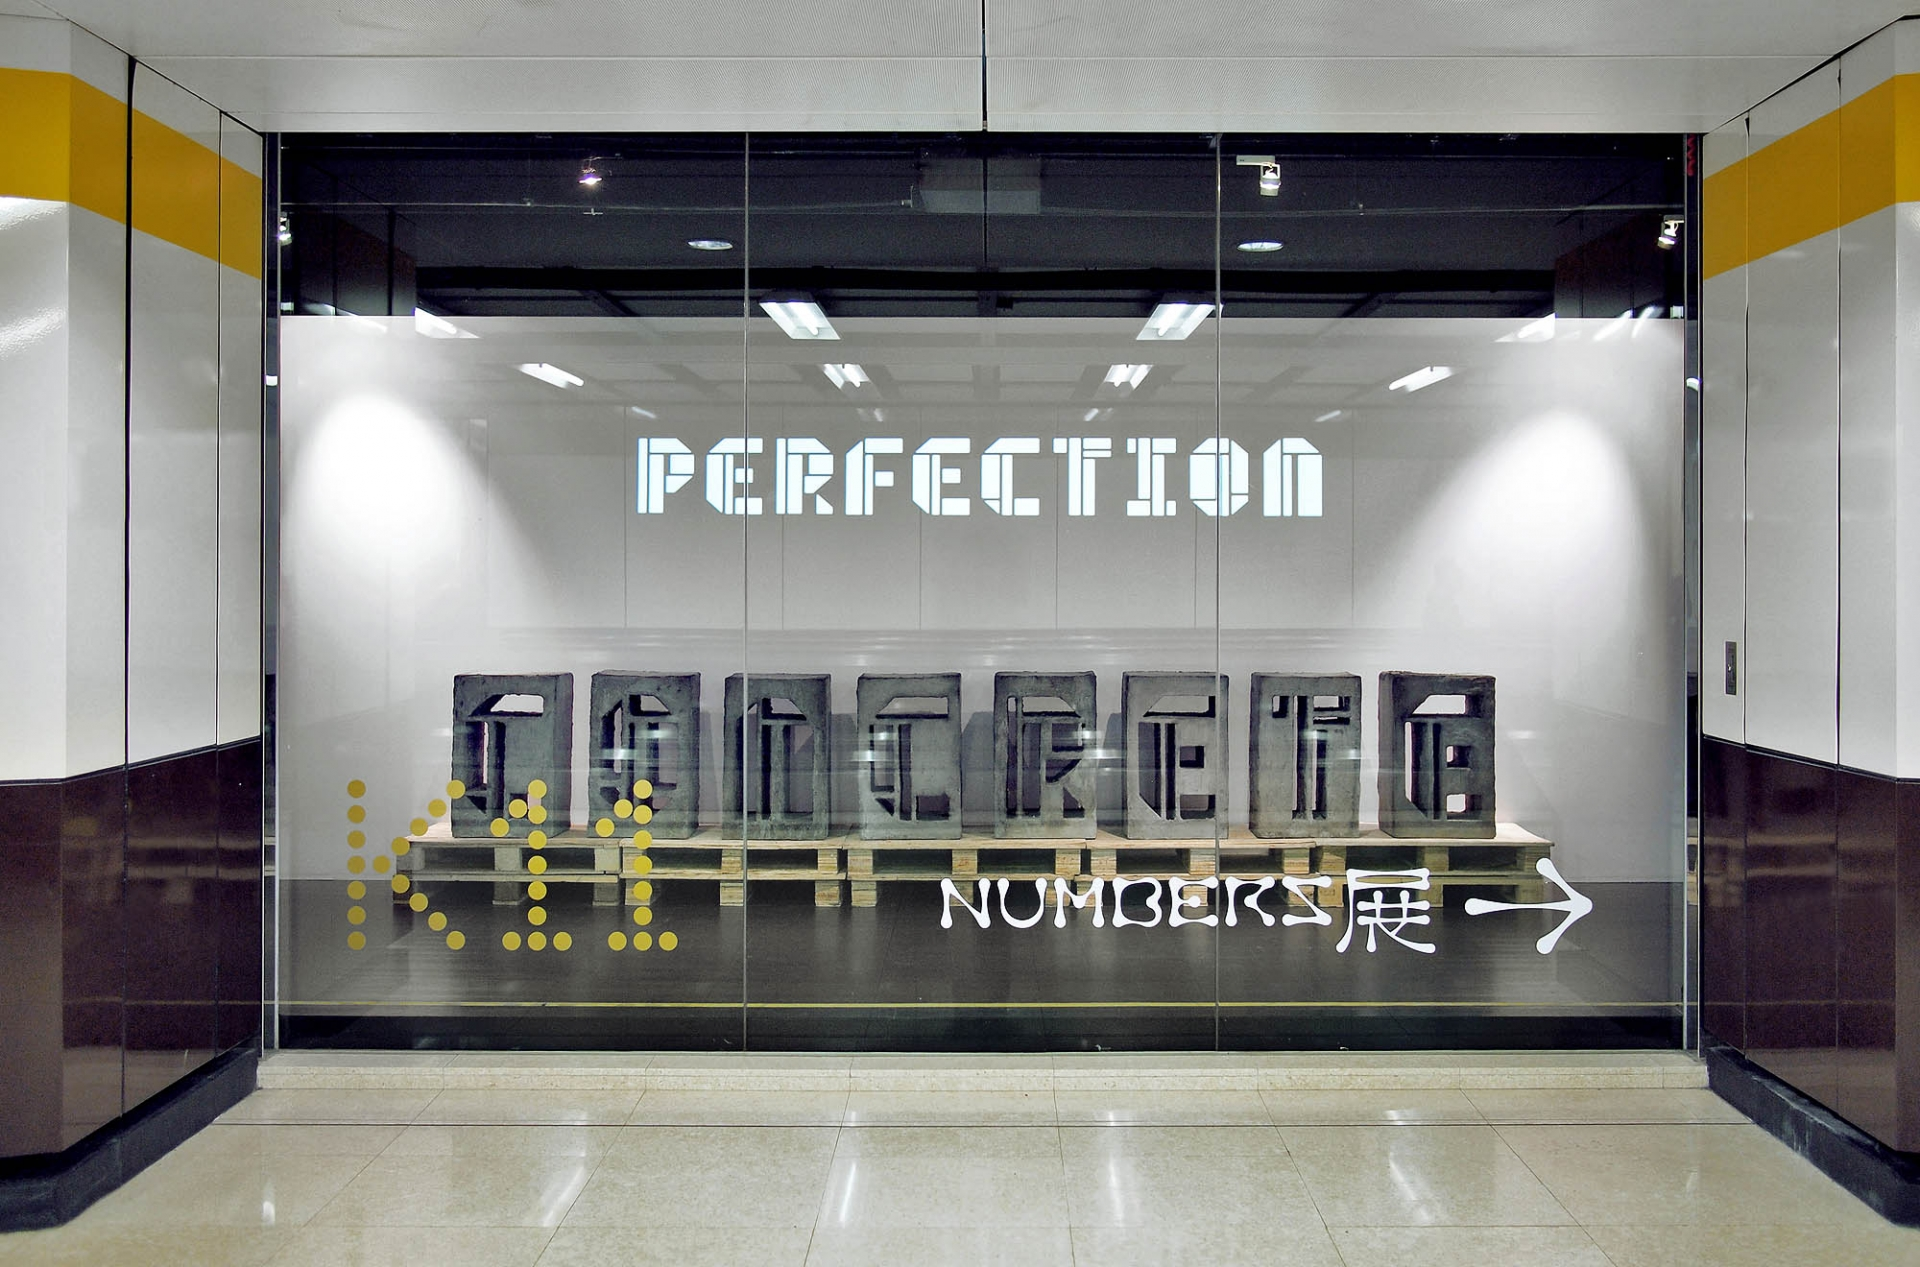 Good Morning Design Perfection is not Concrete